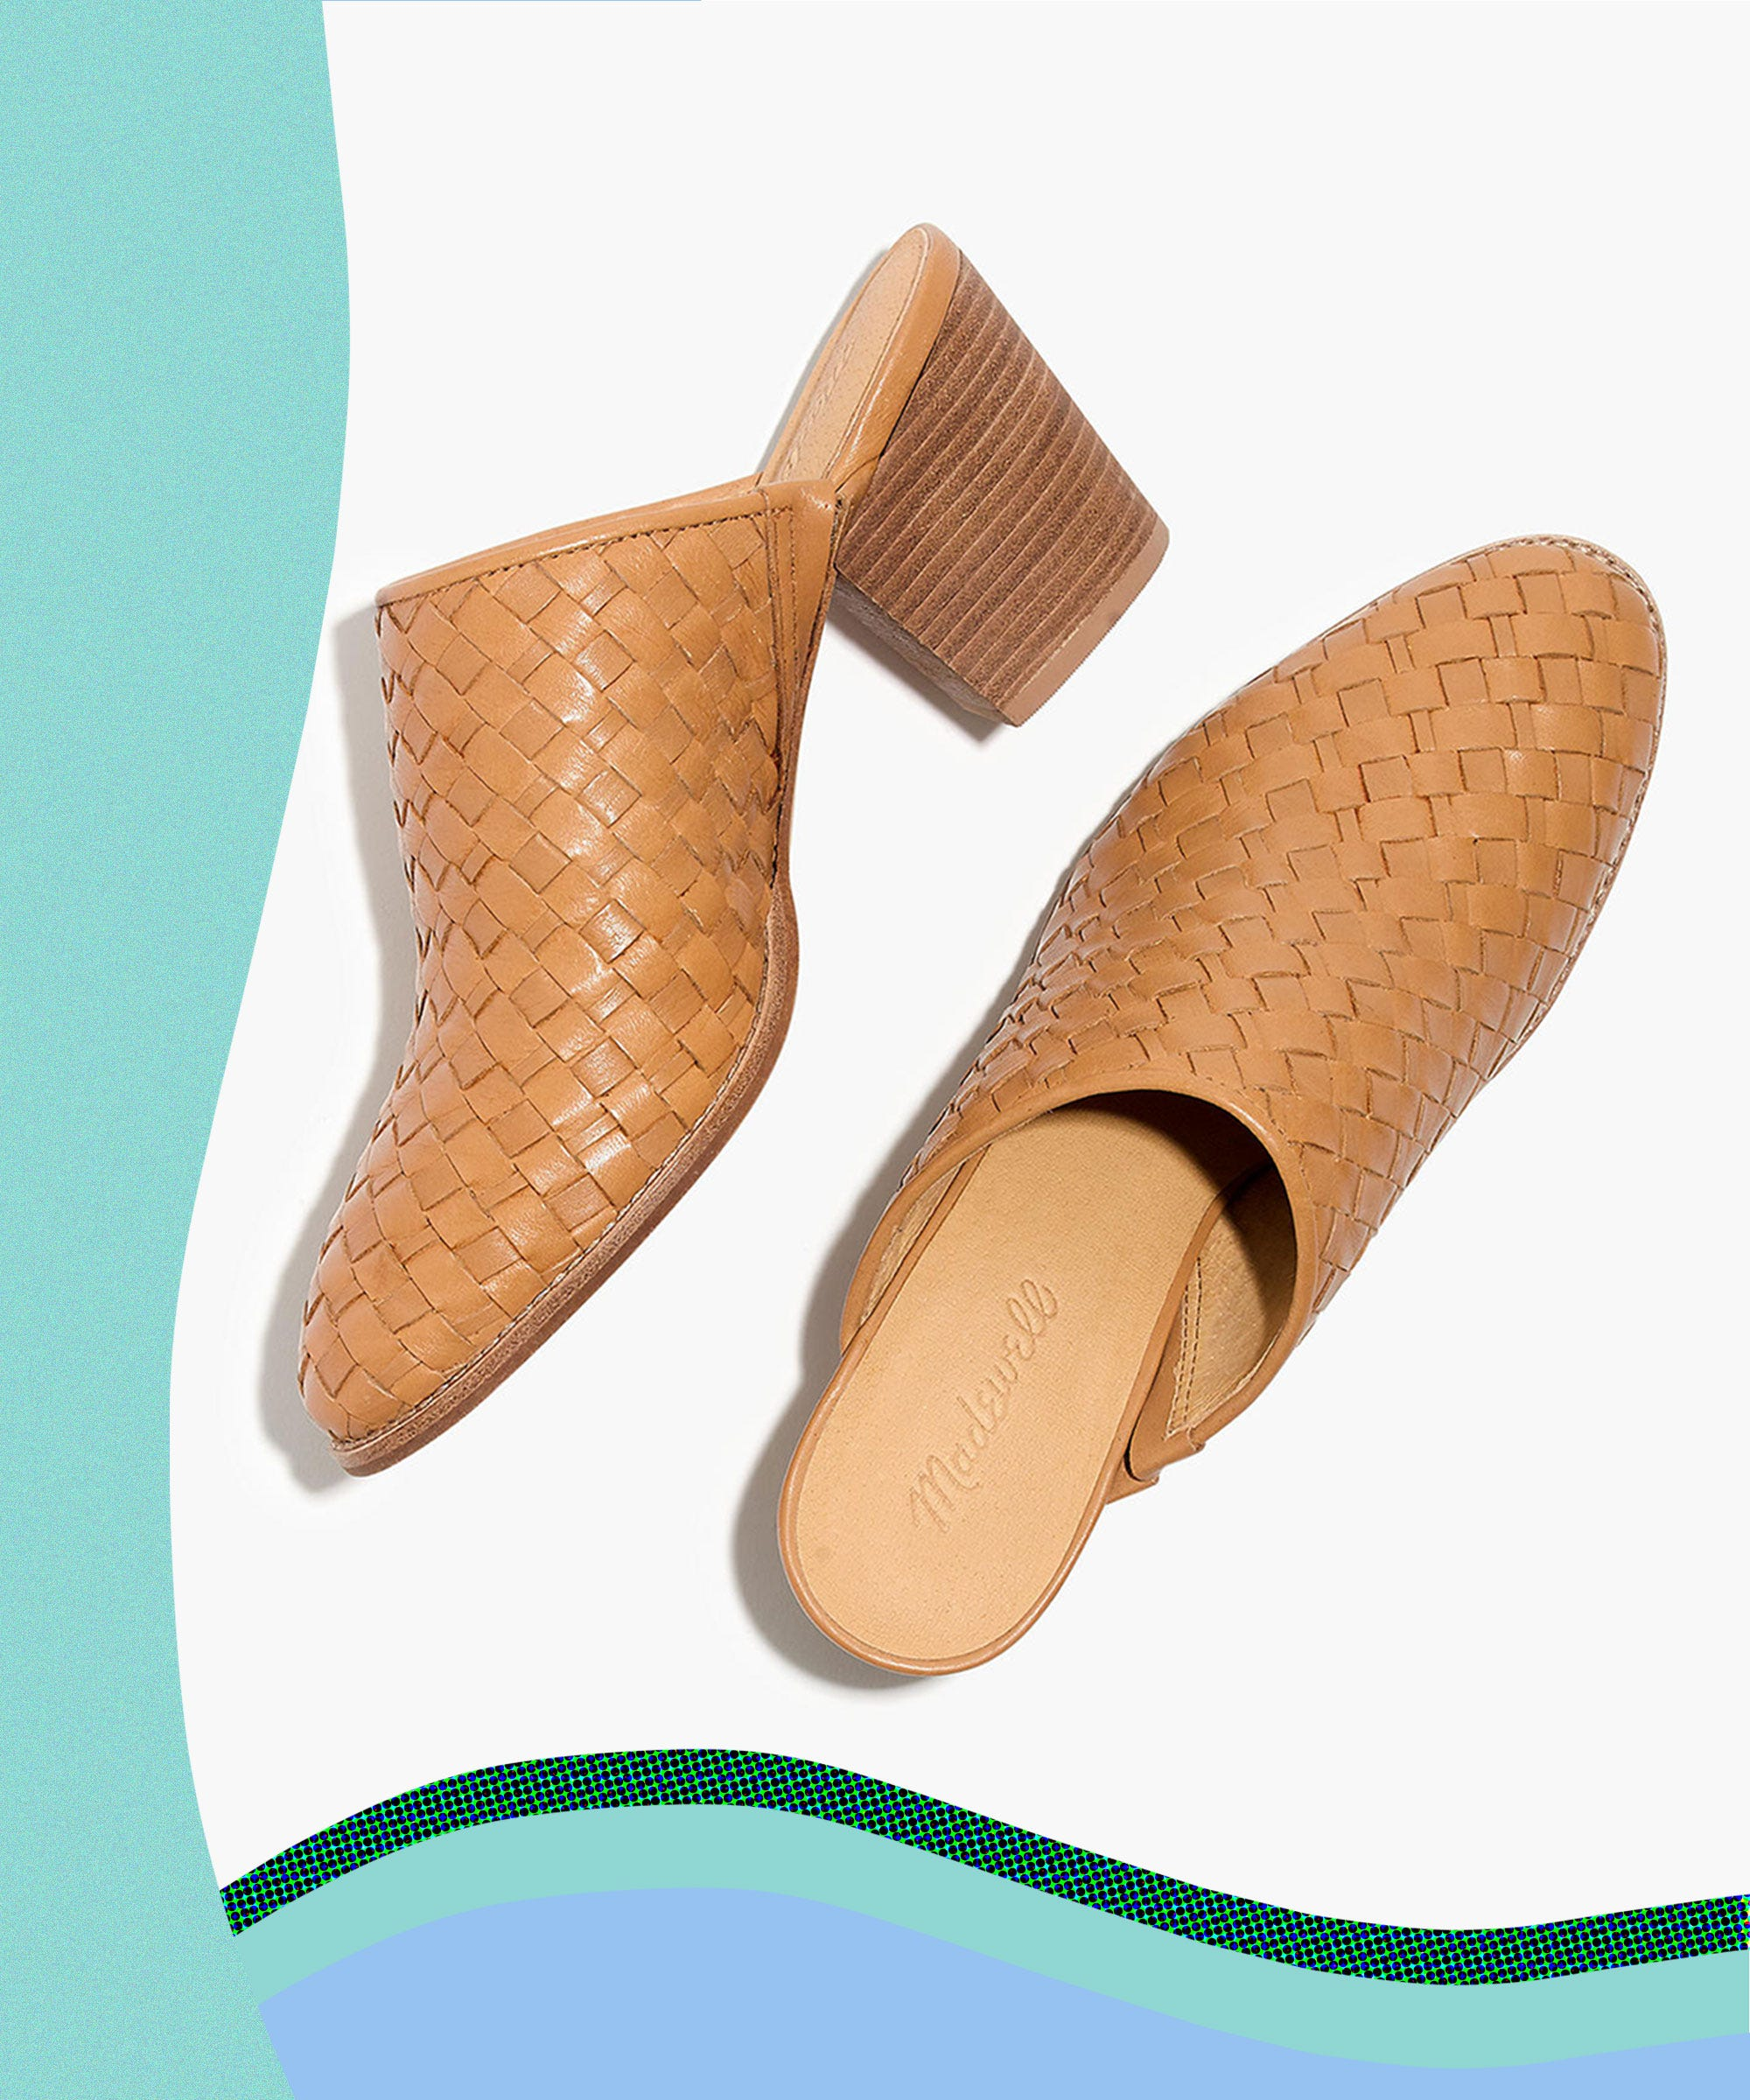 Vision-Board Your Vacation In A Pair Of Woven Mules